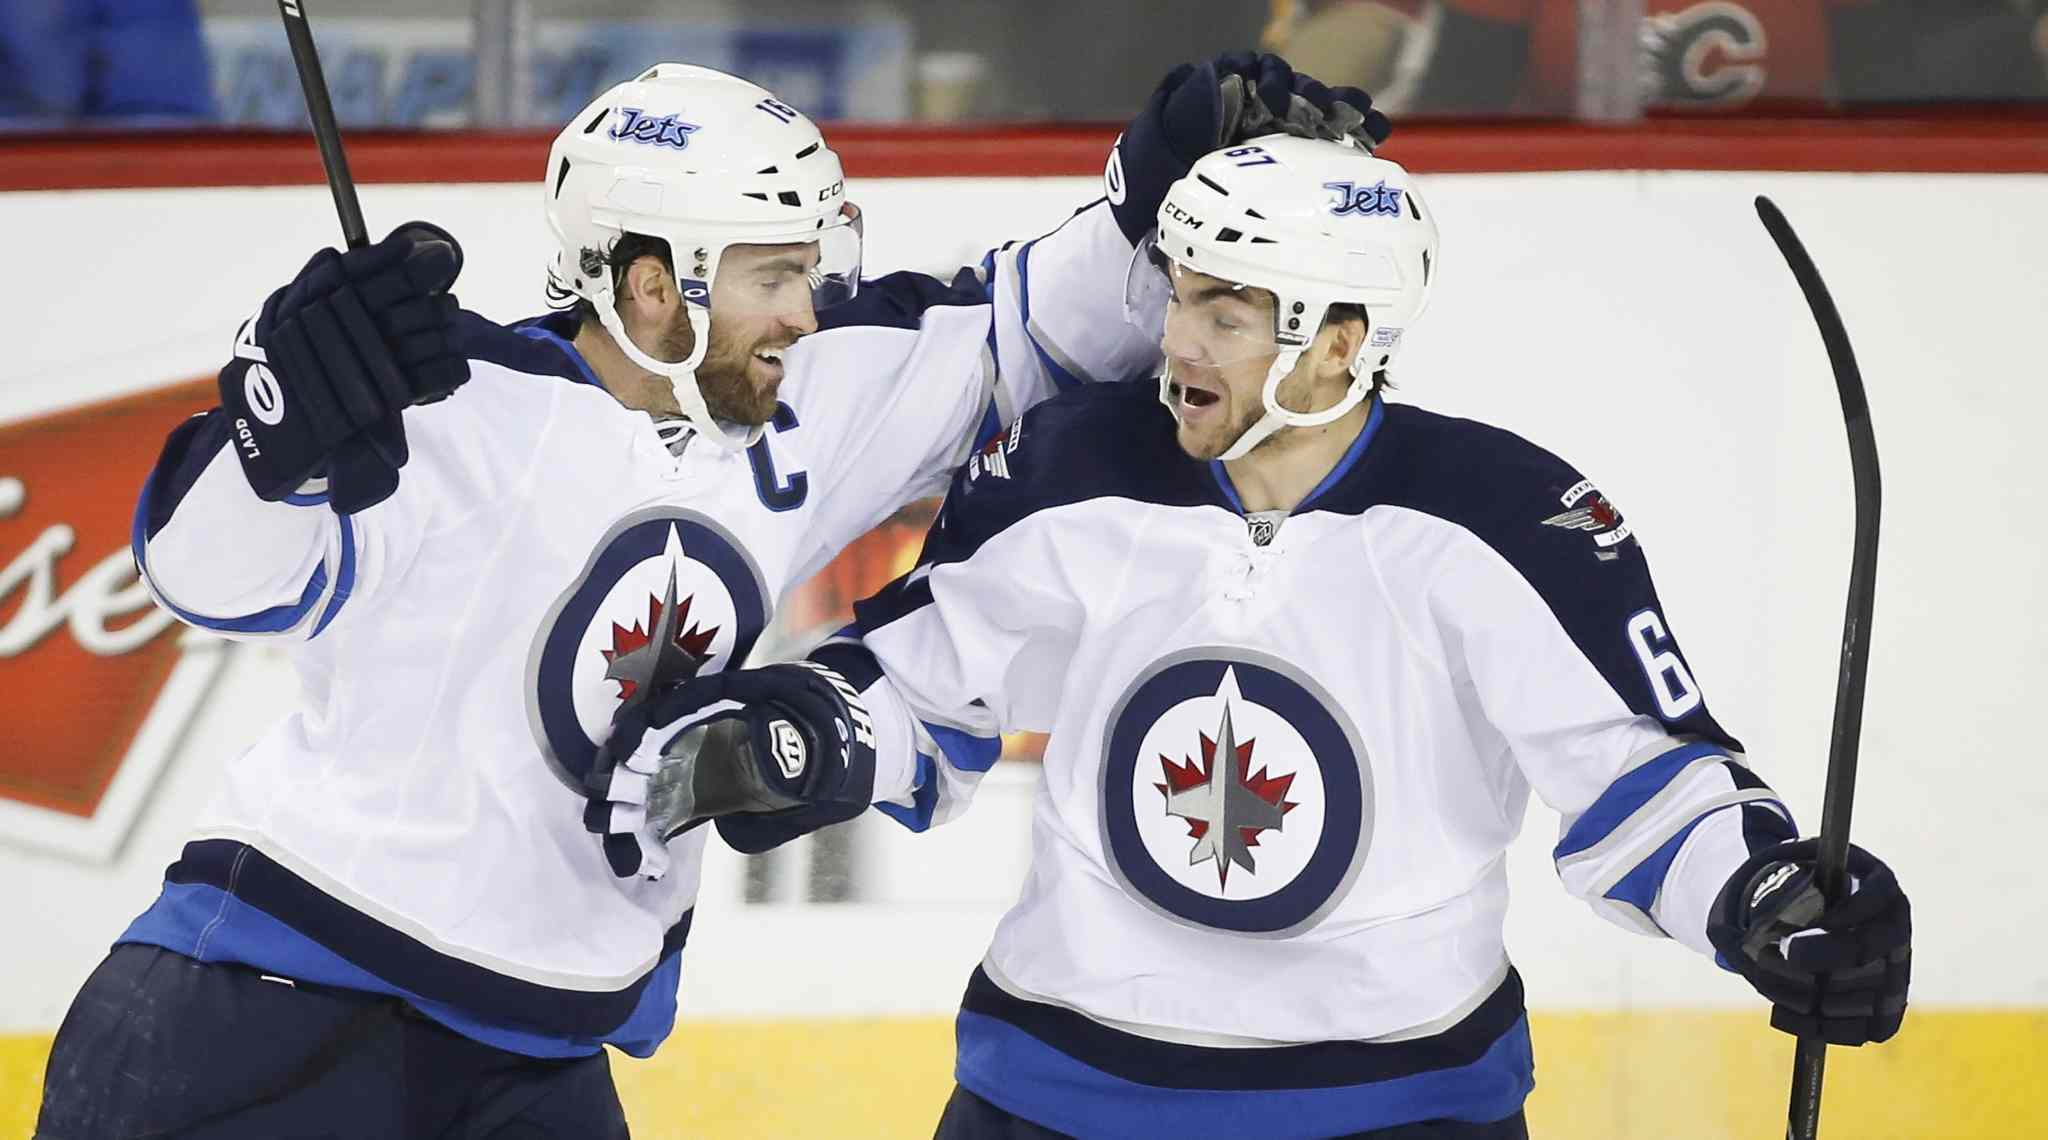 Winnipeg Jets' Michael Frolik, left, celebrates his assist with teammate Andrew Ladd during first period NHL hockey action against the Calgary Flames in Calgary Thursday.